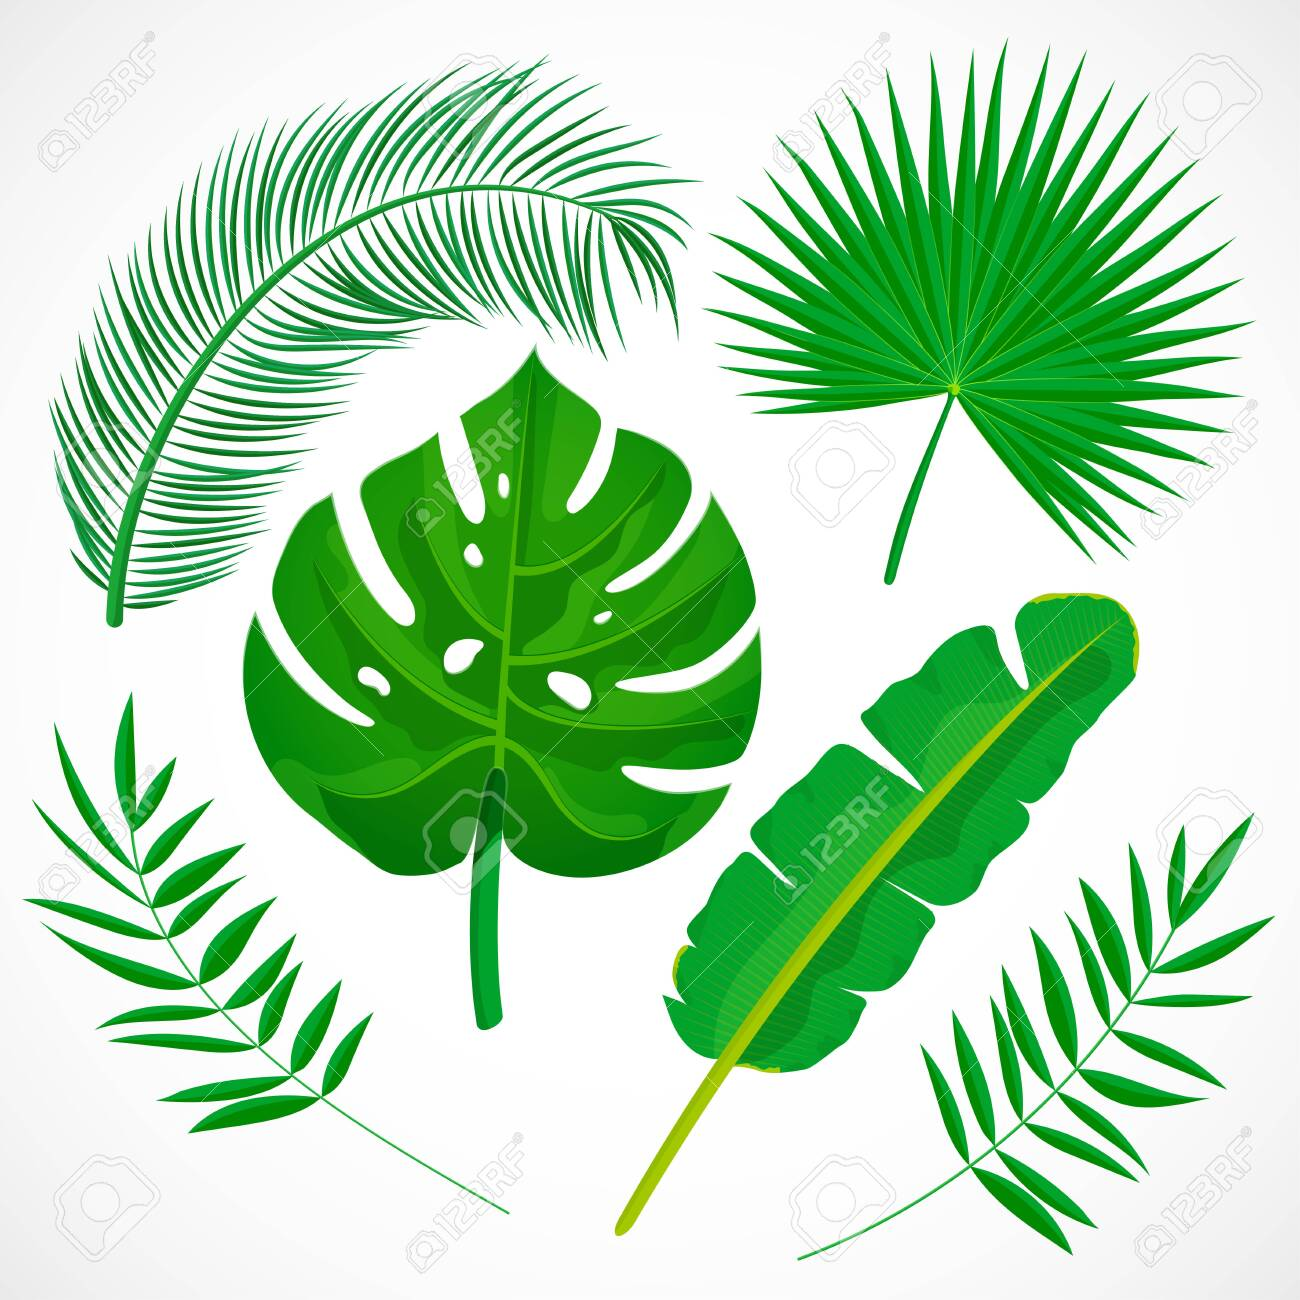 Flat Palm Leaves Set Tropical Plants Icons Collection Banana Royalty Free Cliparts Vectors And Stock Illustration Image 121428407 High quality jpg included.under commons 4.0. flat palm leaves set tropical plants icons collection banana